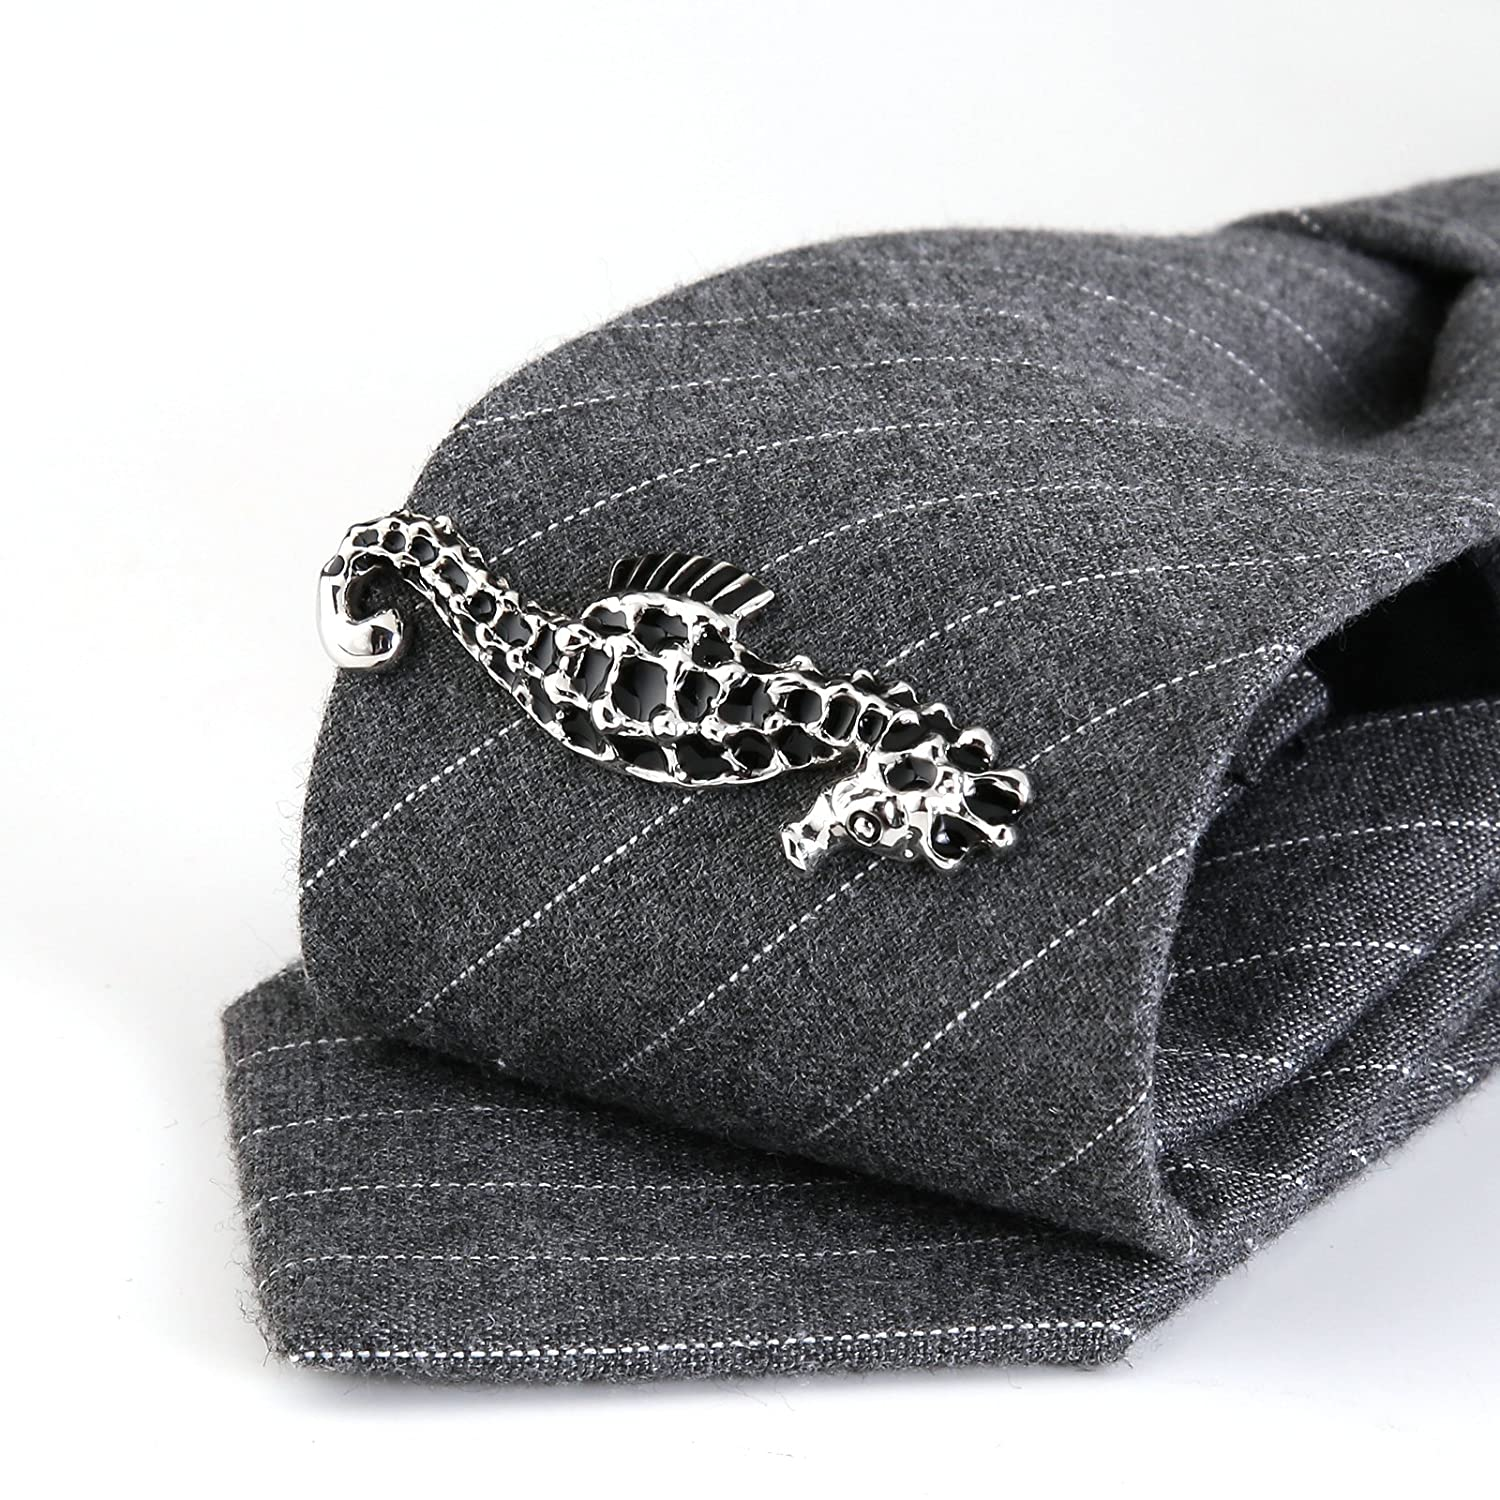 MoAndy Stainless Steel Tie Clip for Men Hippocampus for Wedding Business Black